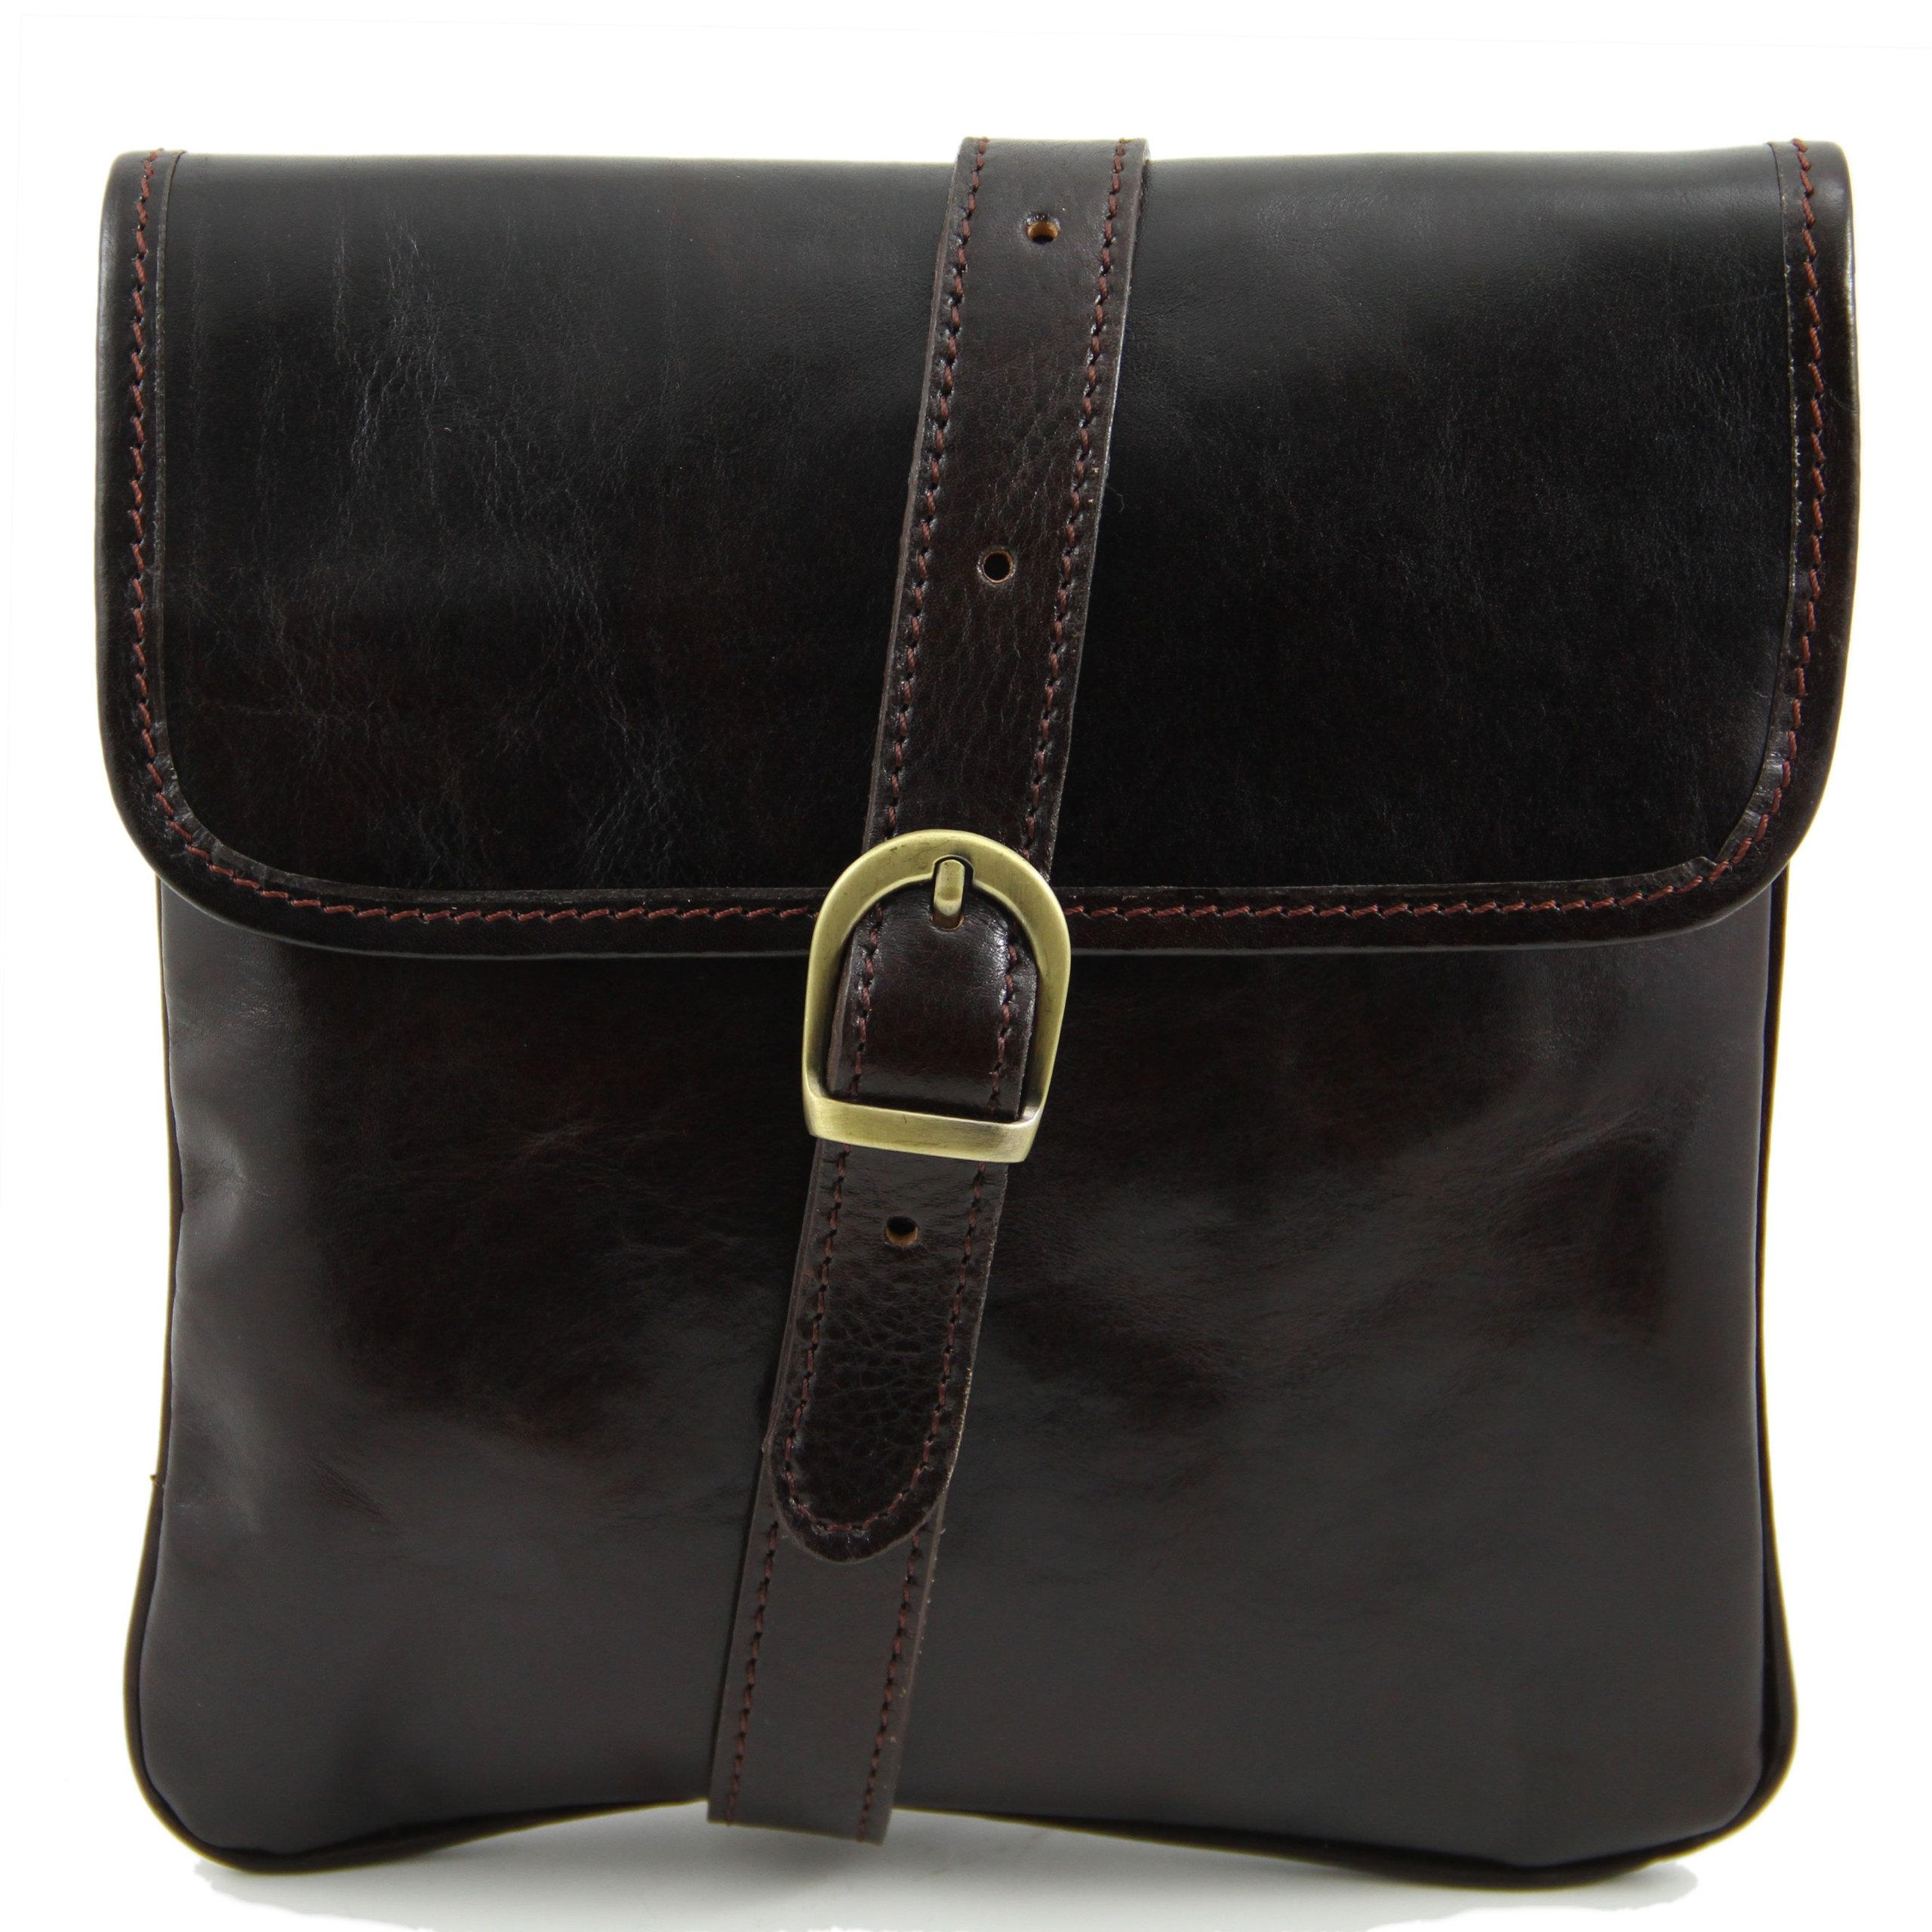 Tuscany Leather Joe Leather Crossbody Bag Dark Brown Leather bags for men